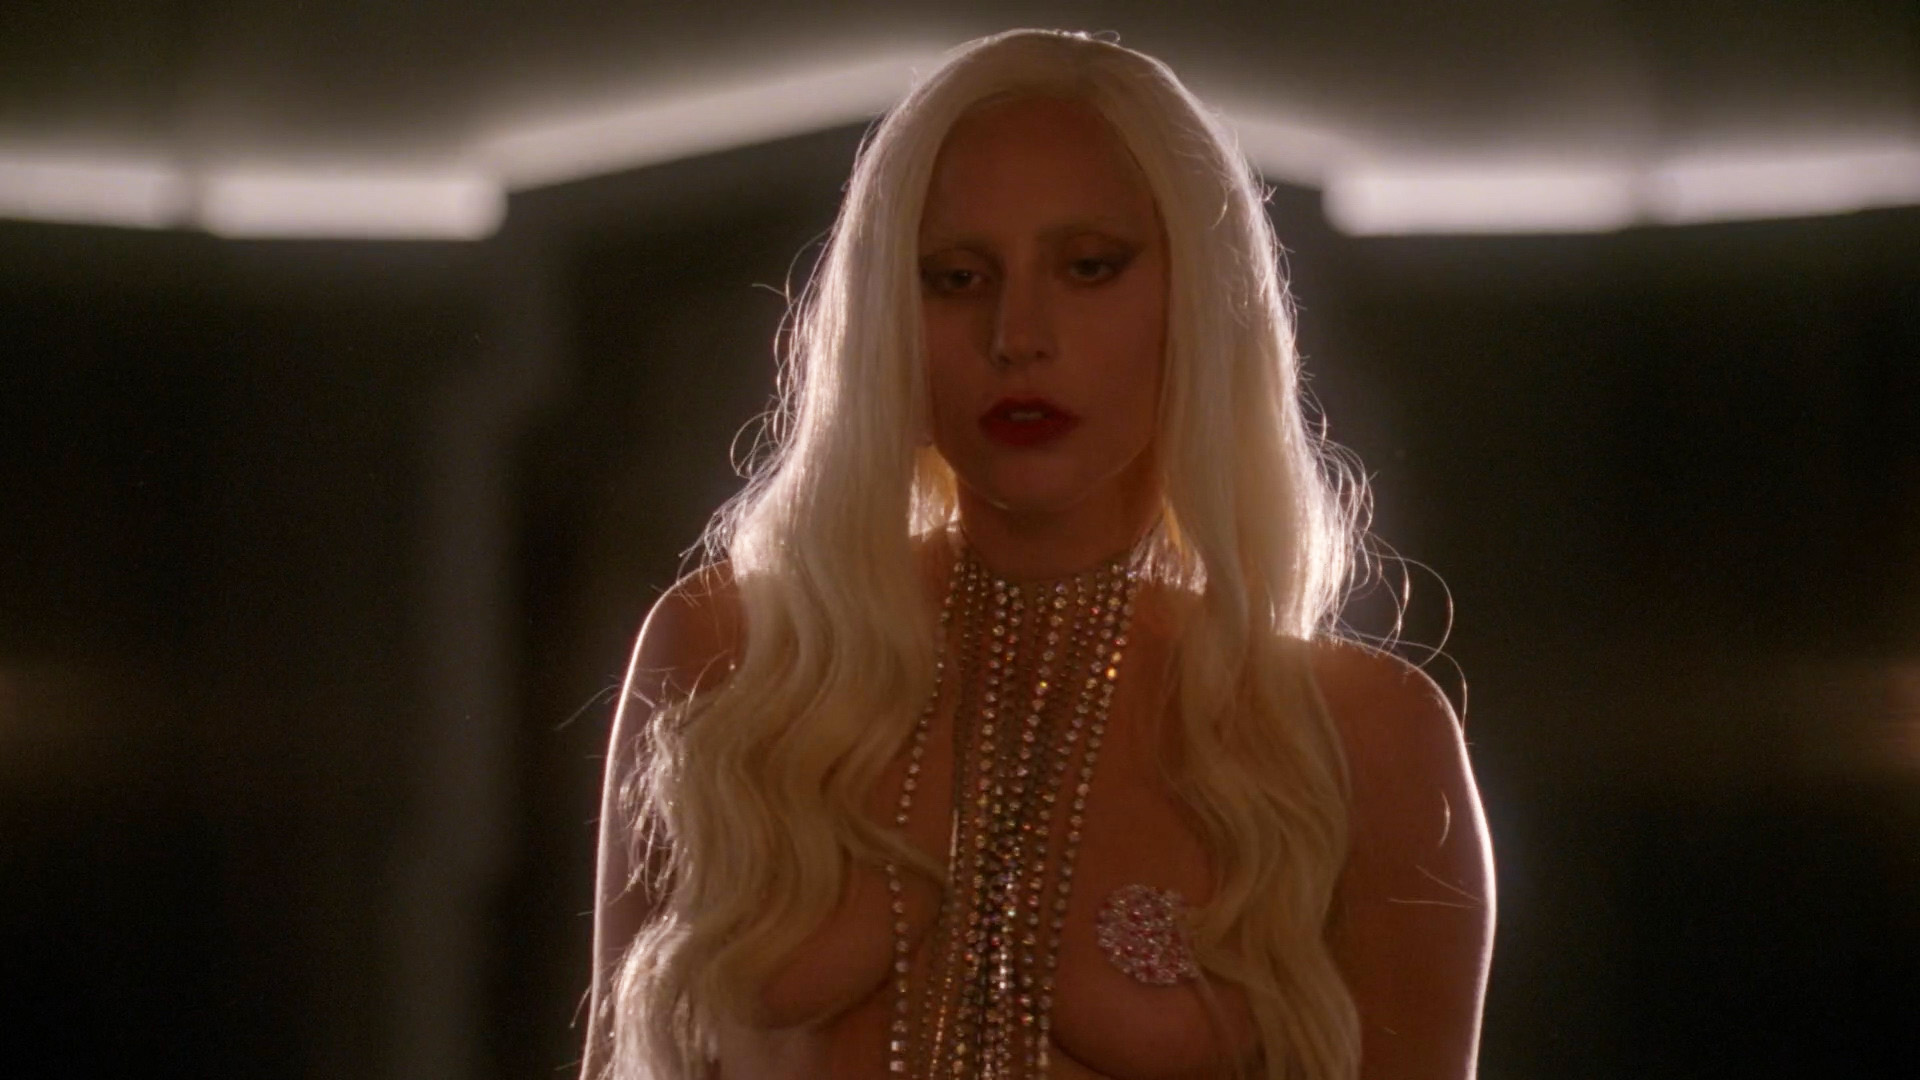 Lady Gaga, Chasty Ballesteros – American Horror Story s05e01 (2015) HD 1080p